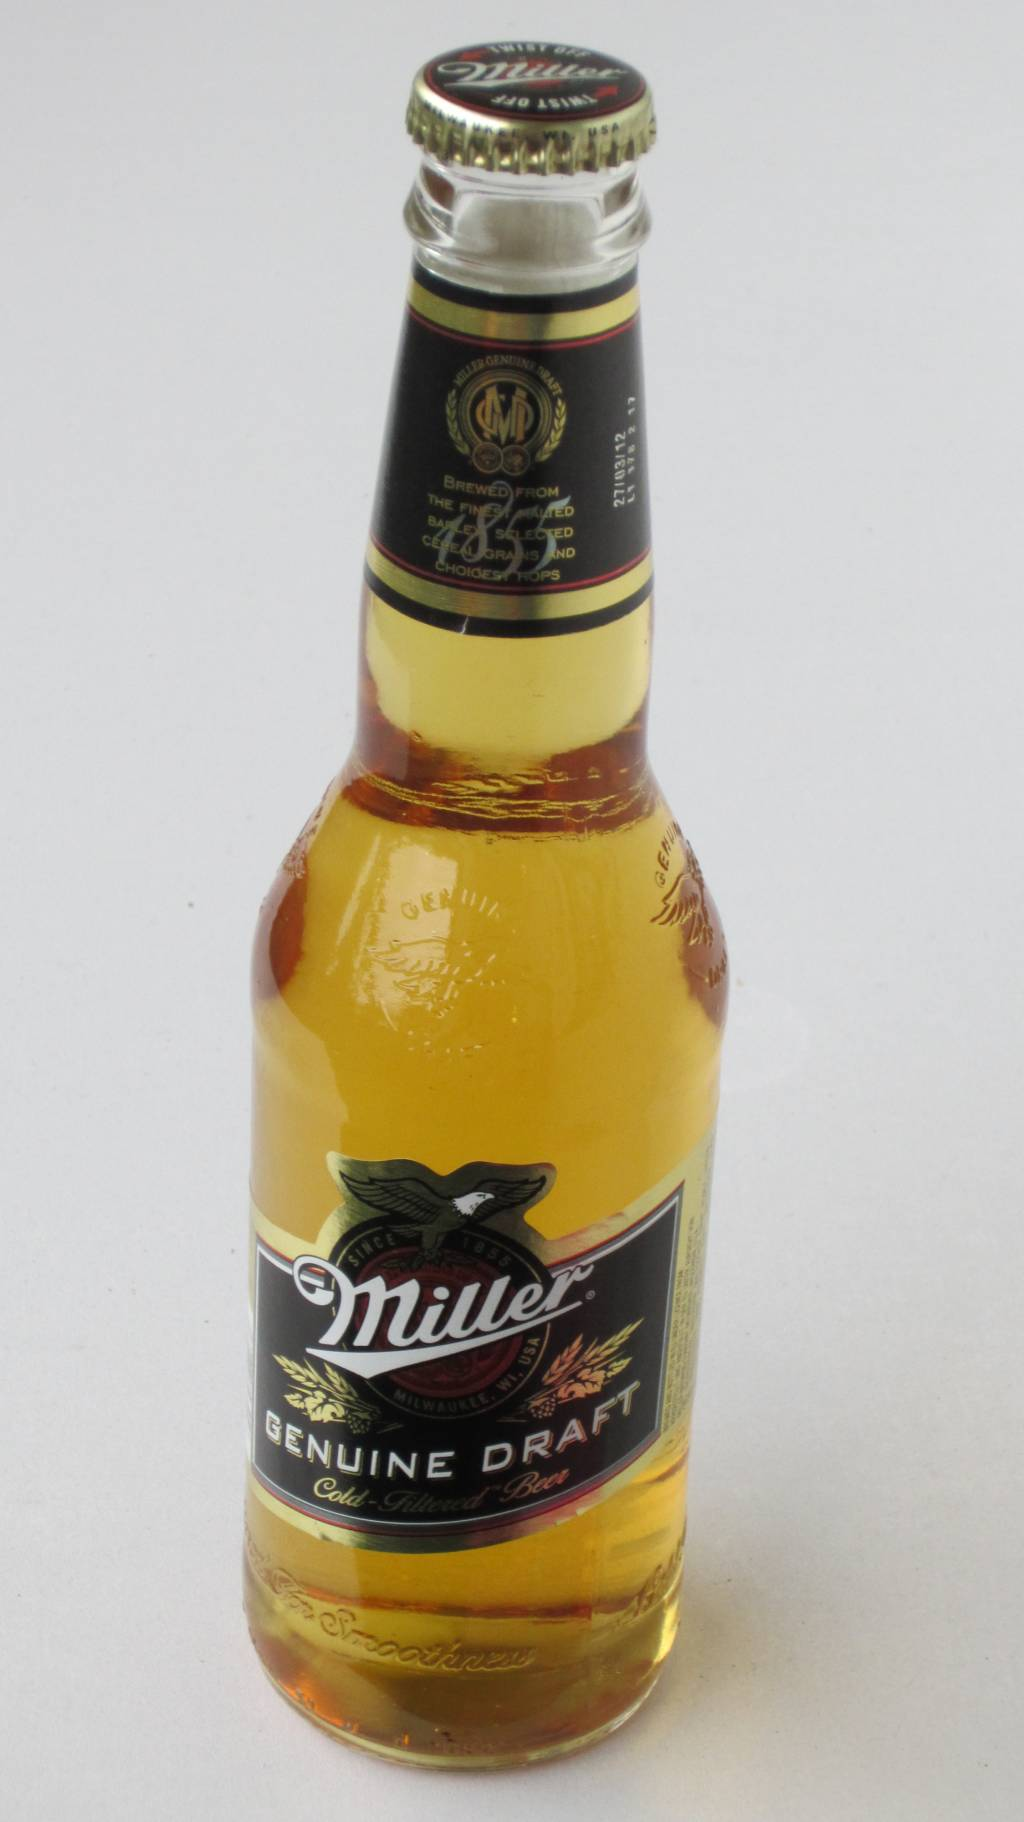 strategic position of sabmiller On november 11, 2015, brewers ab inbev and sabmiller formalized their merger   the largest consumer company in the world by making strategic acquisitions   dominant position in latin american countries, such as peru, ecuador, and.